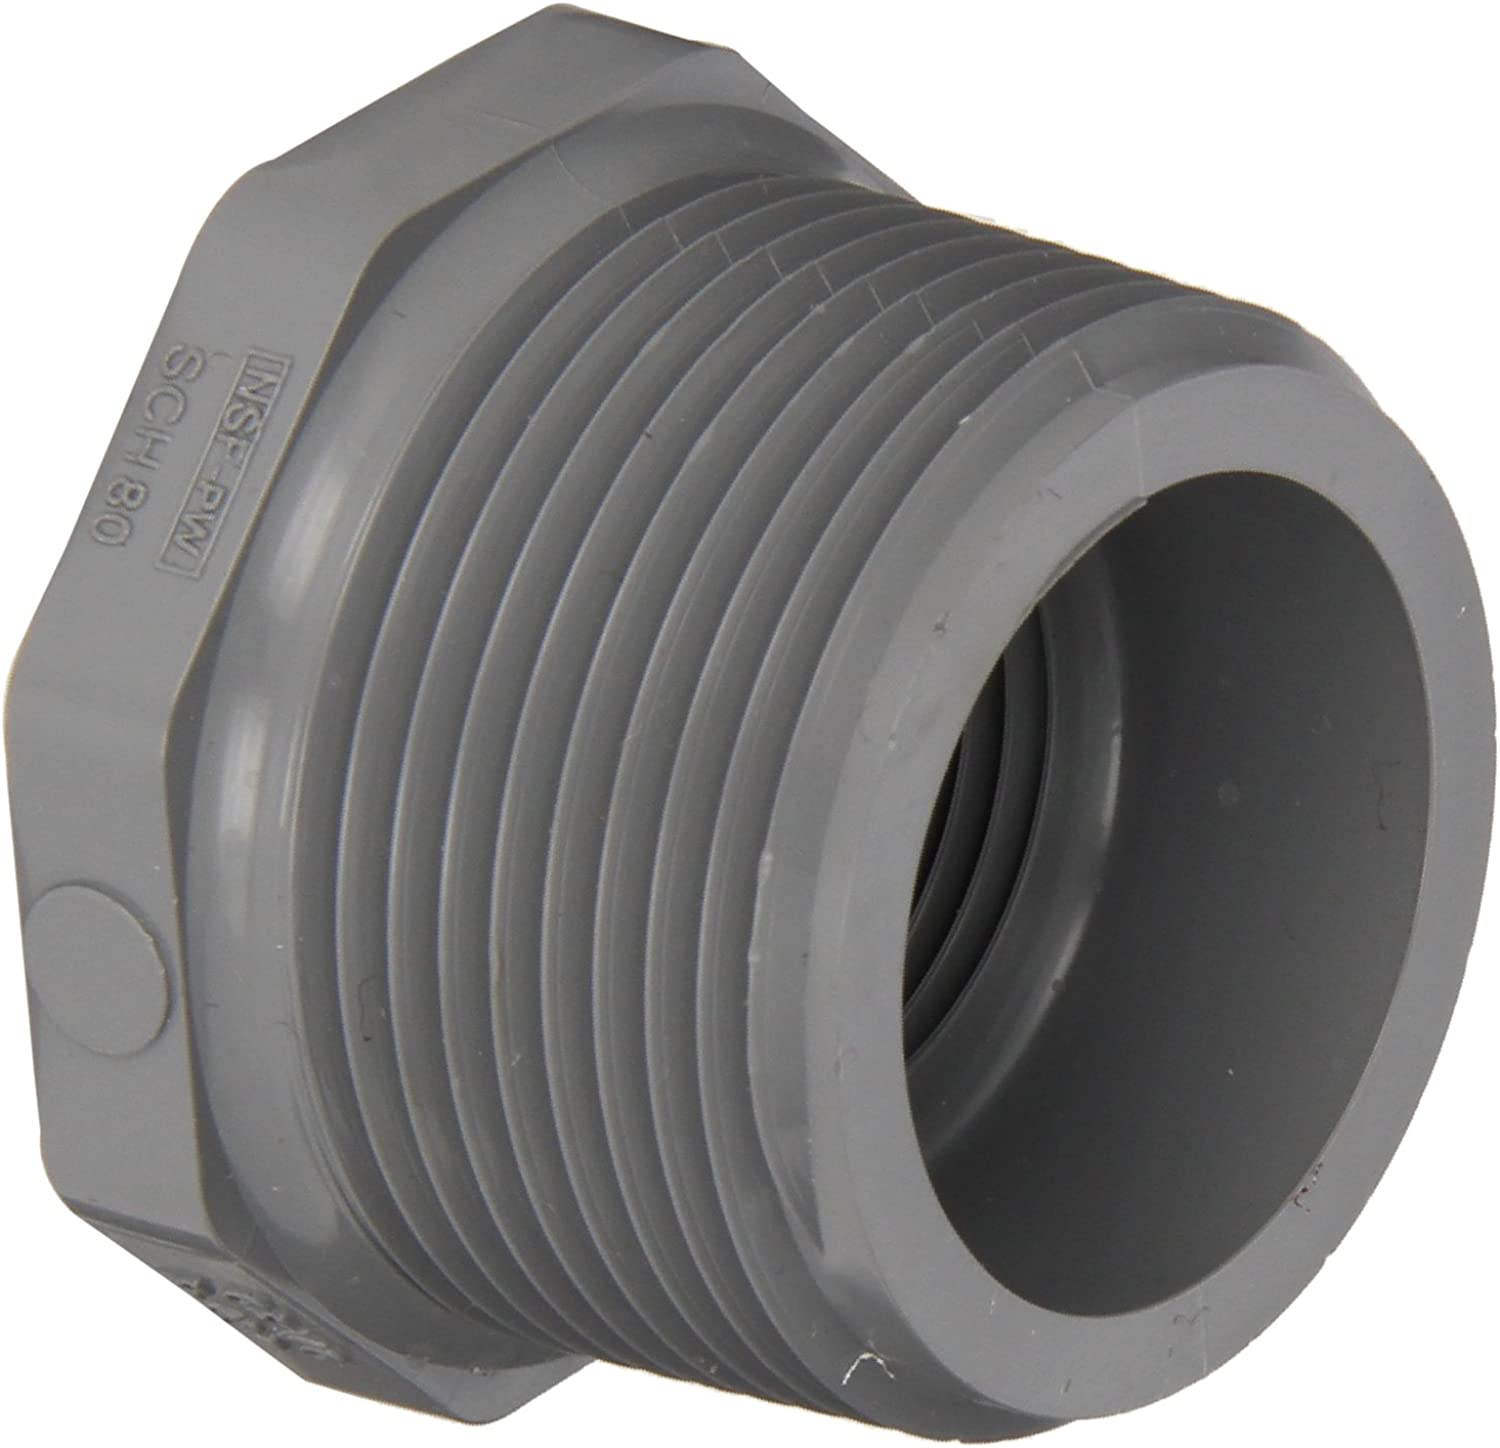 (10cm x 7.6cm , 1)  Spears 839C Series CPVC Pipe Fitting, Bushing, Schedule 80, 10cm NPT Male x 7.6cm NPT Female